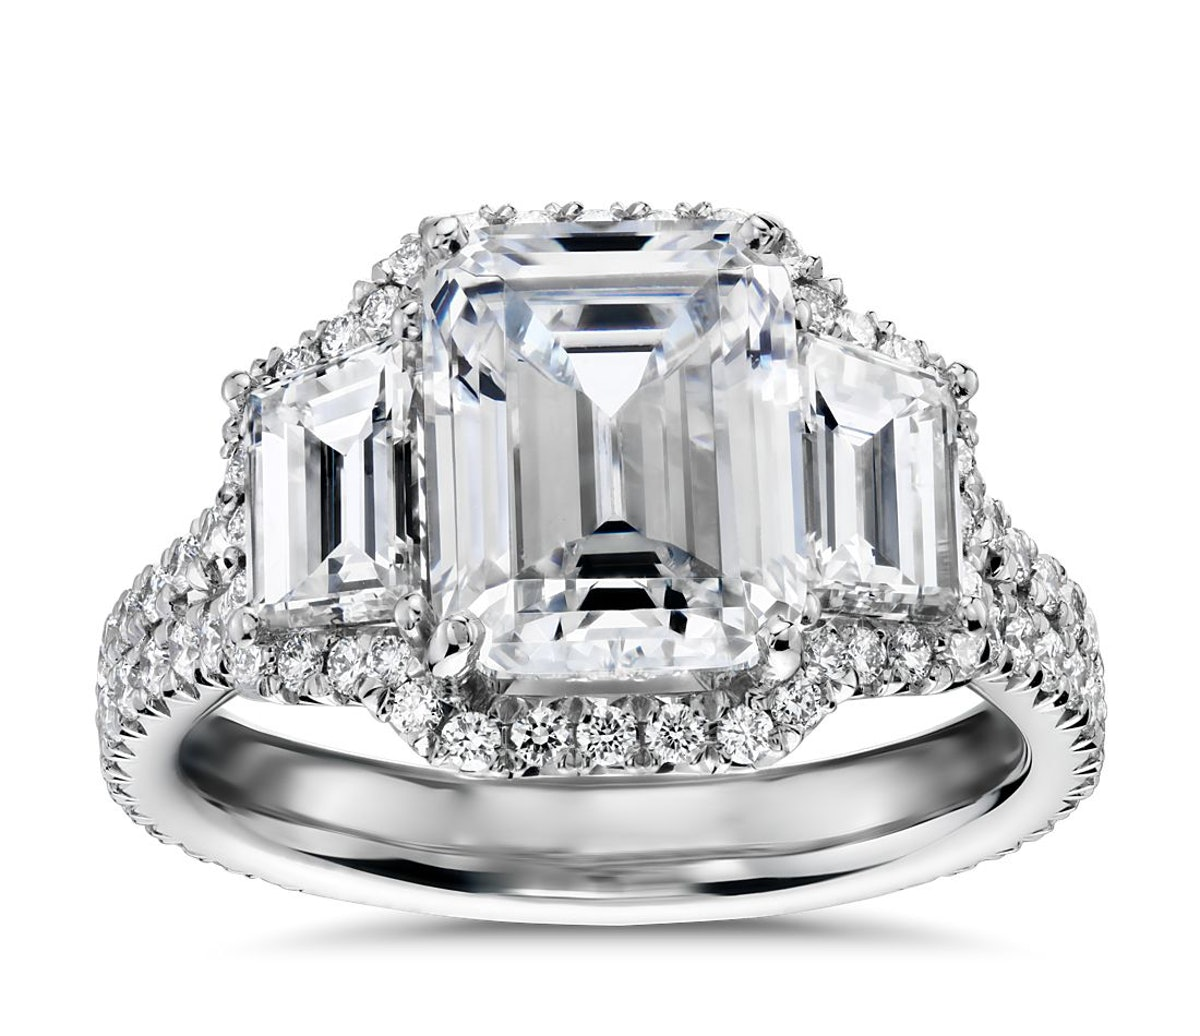 The Gallery Collection Emerald Three Stone Halo Diamond Engagement Ring